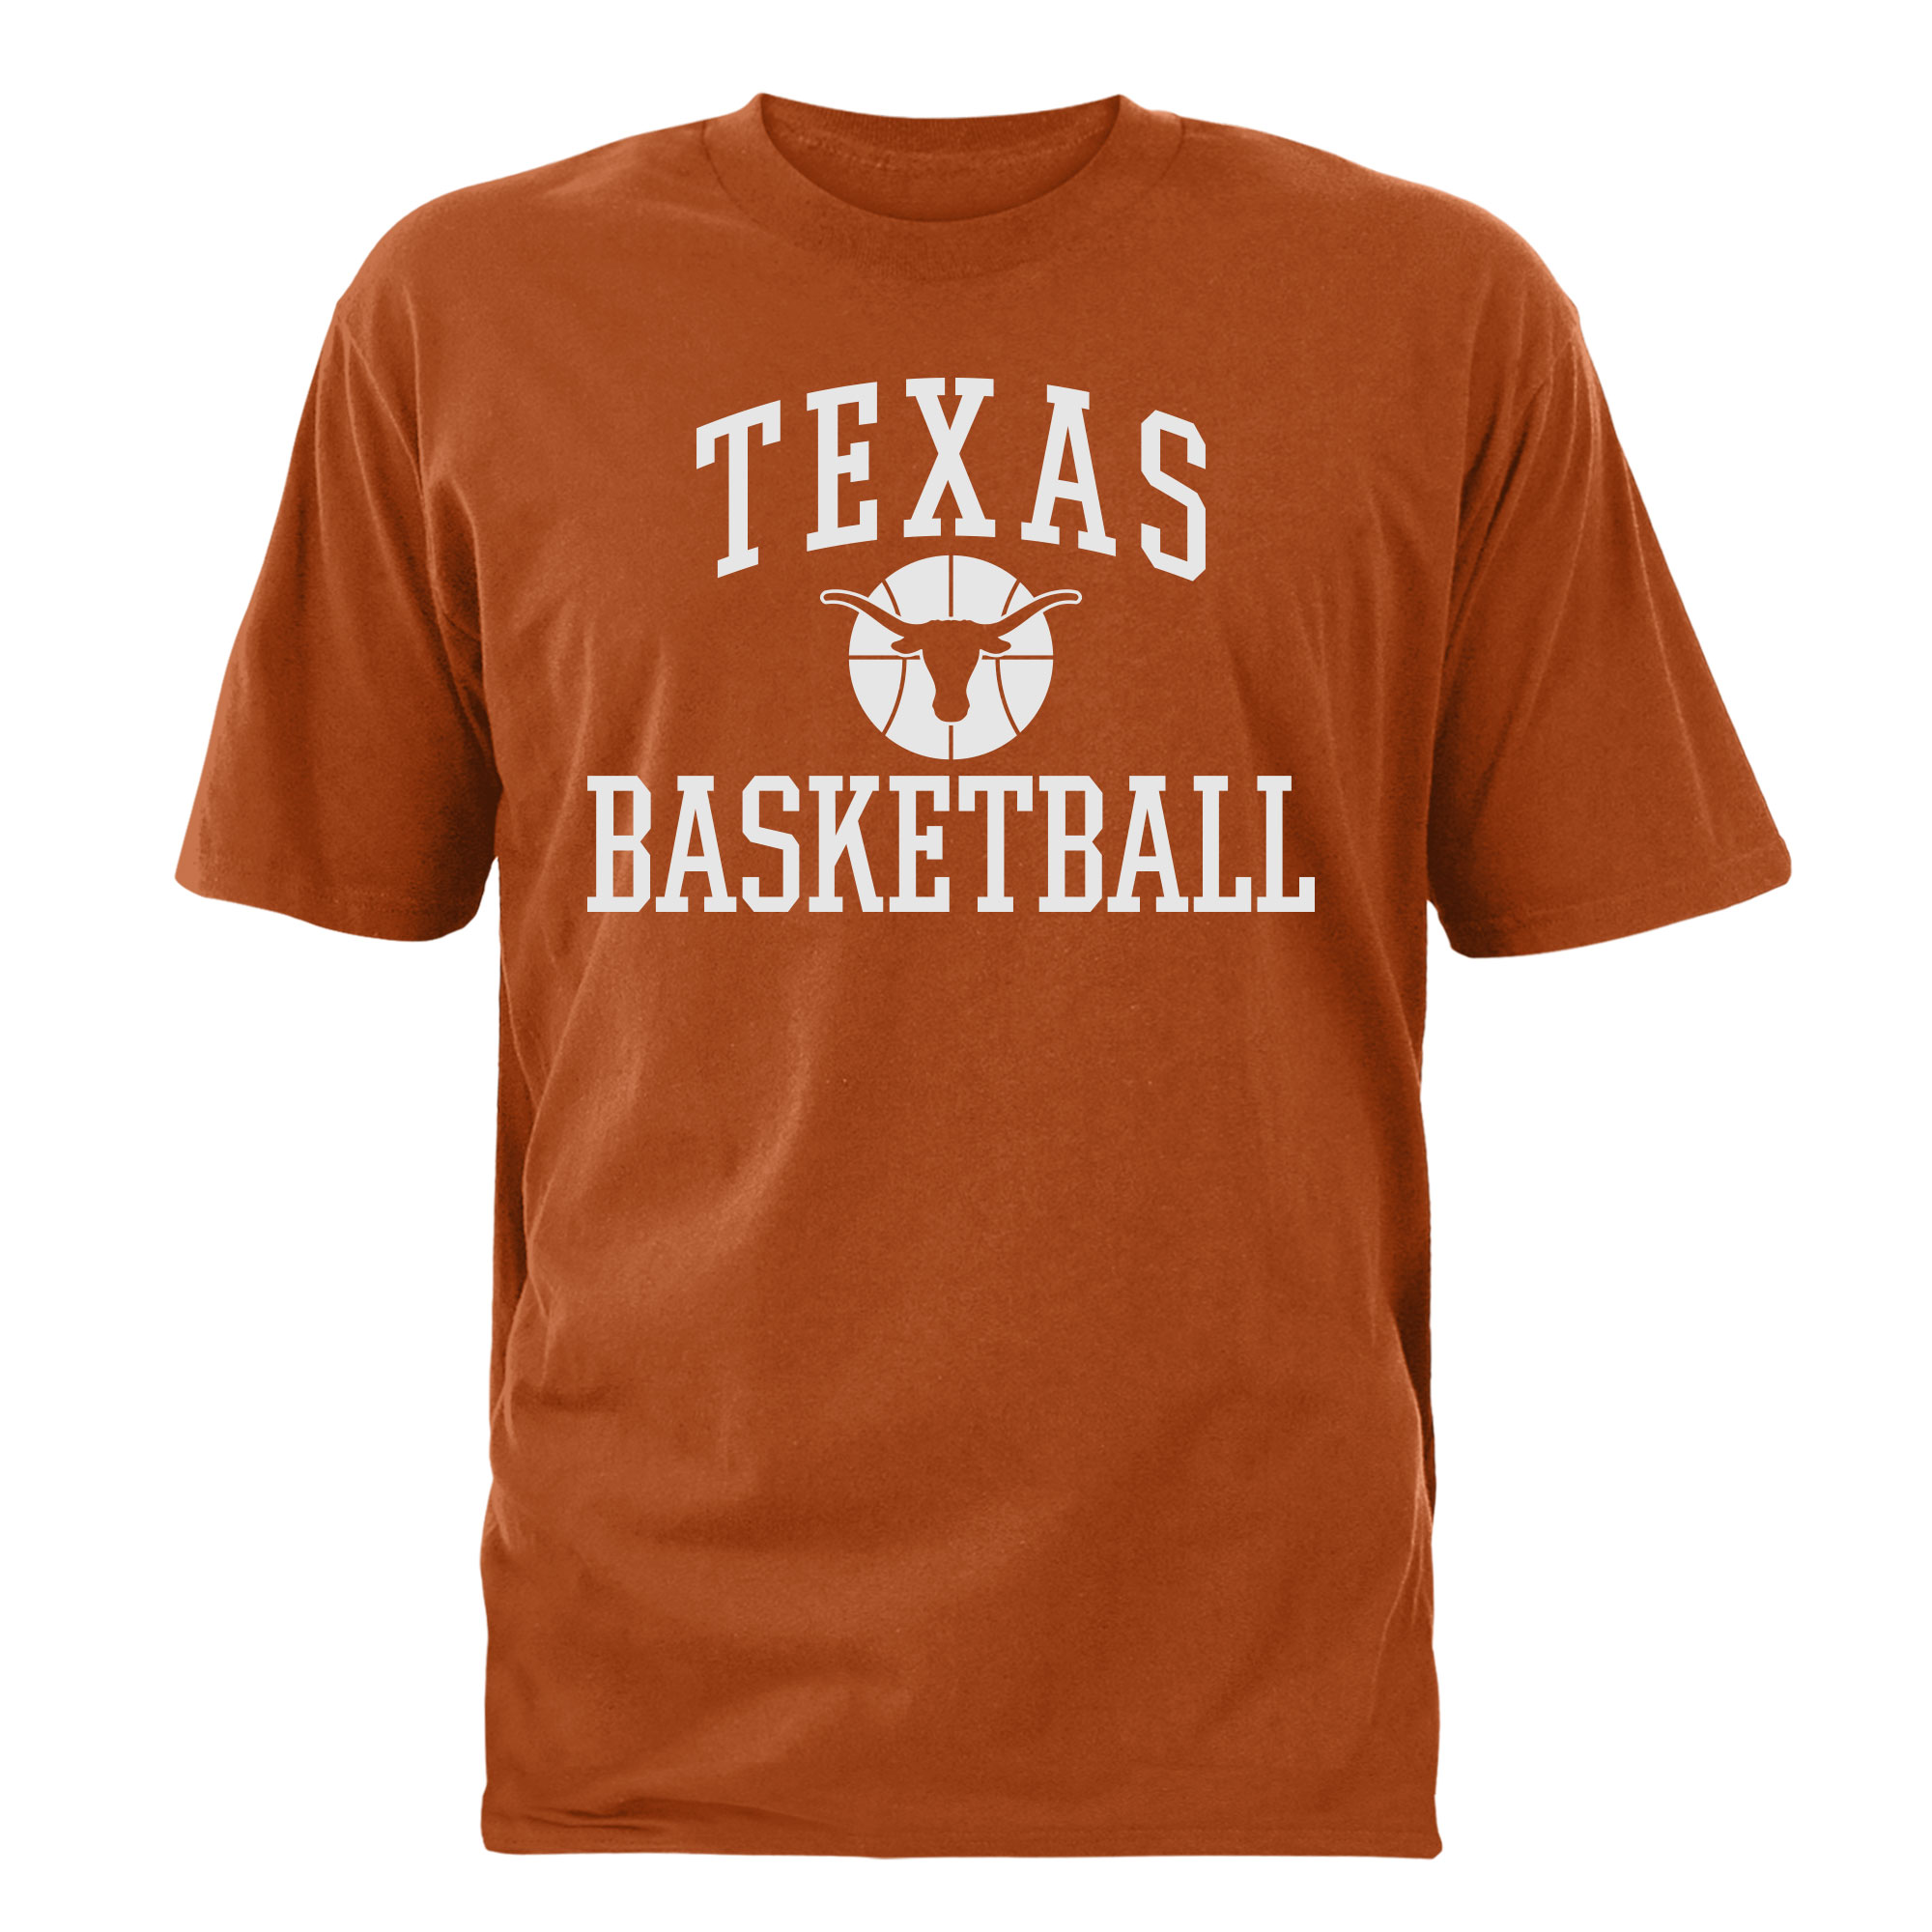 Men's Texas Orange Texas Longhorns Basketball T-Shirt